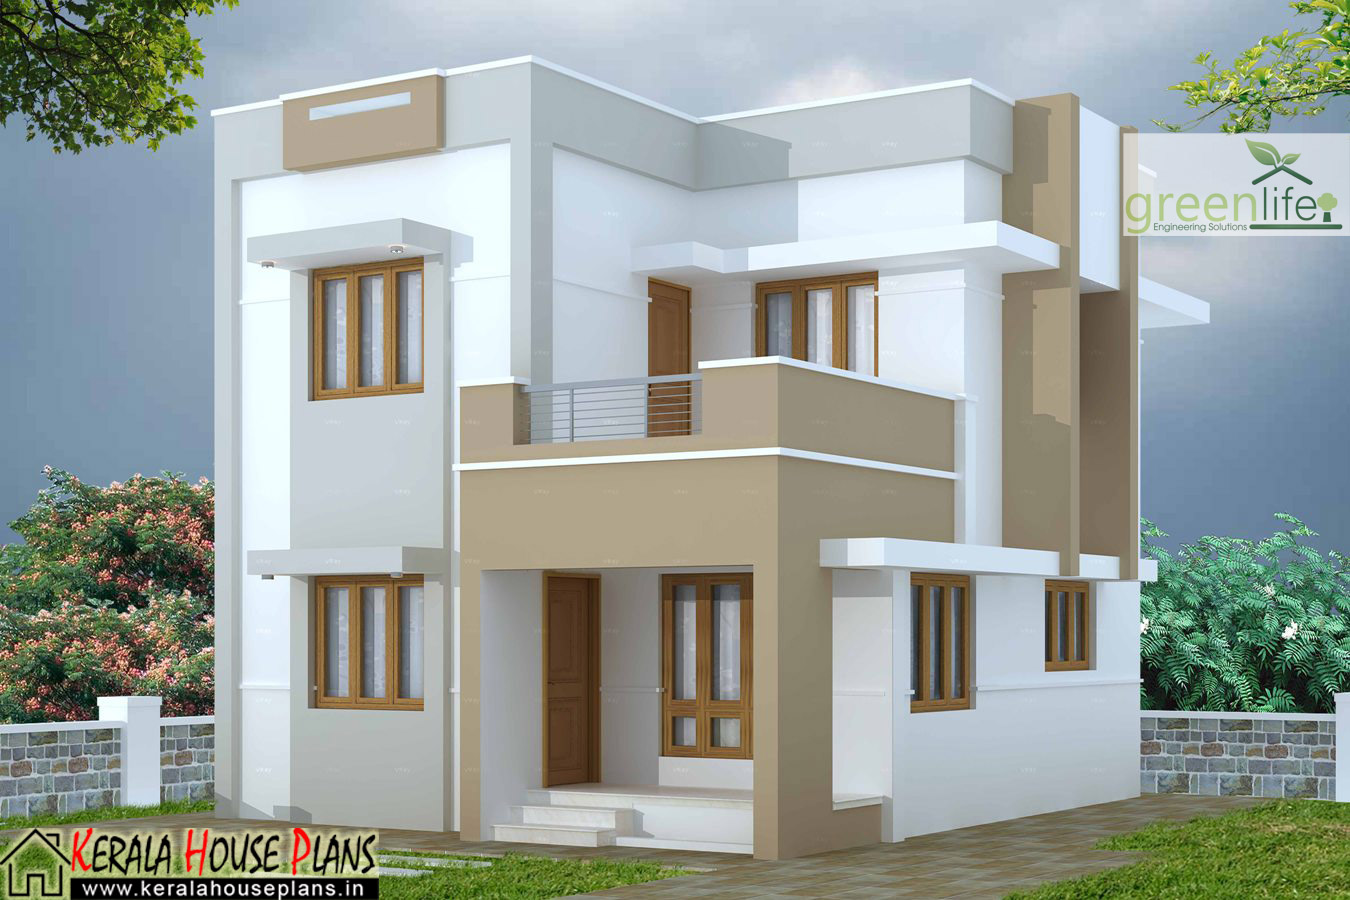 Keralahouseplans.in